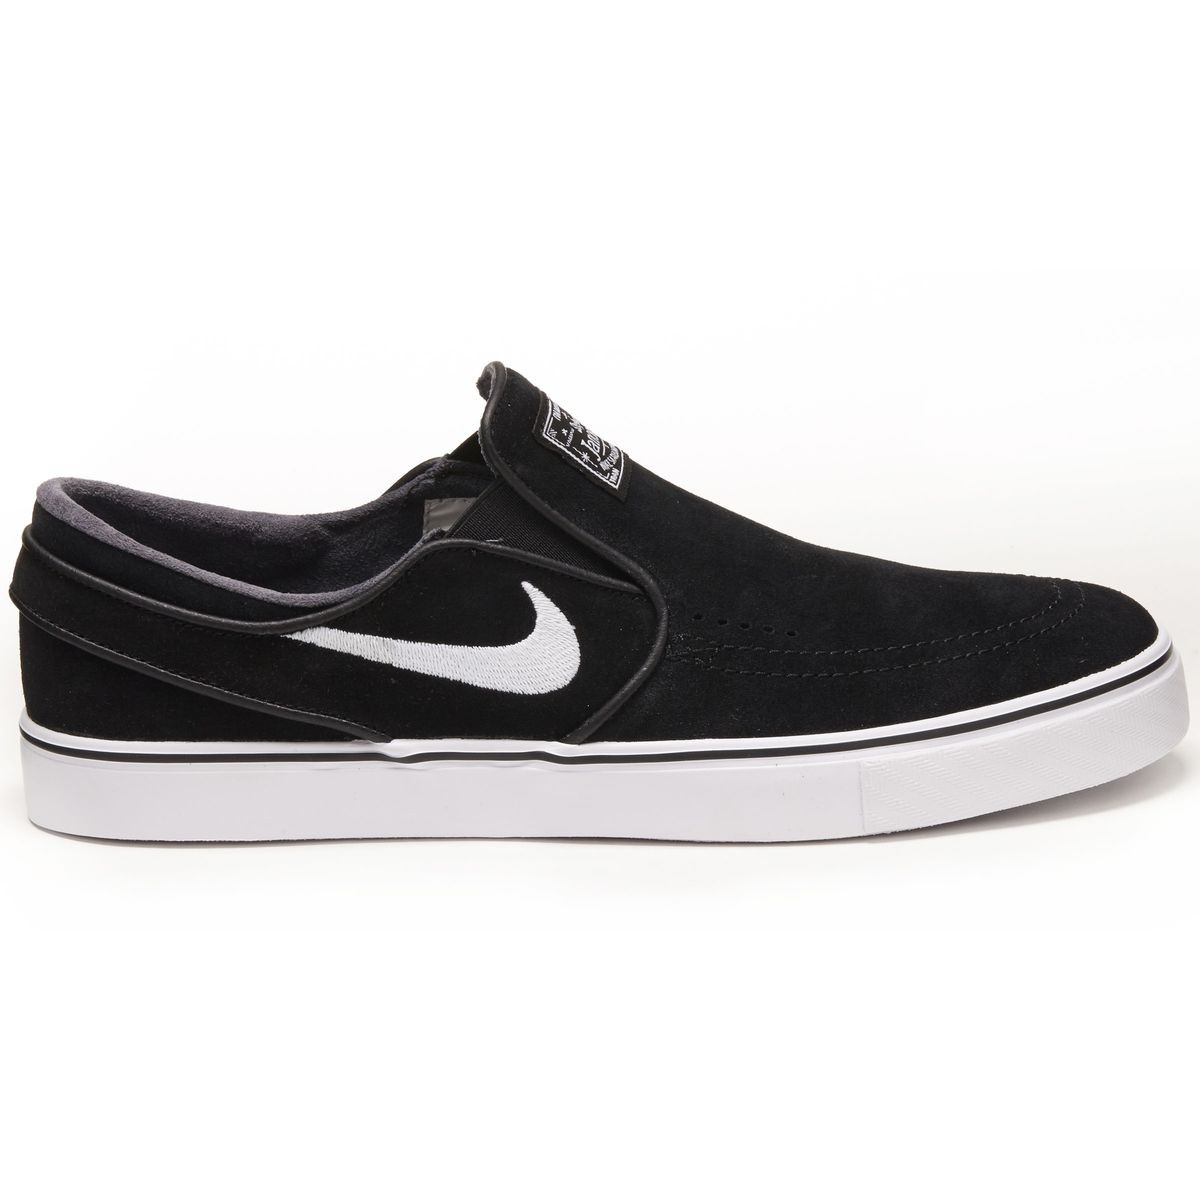 Find great deals on eBay for nike slip on shoes. Shop with confidence.